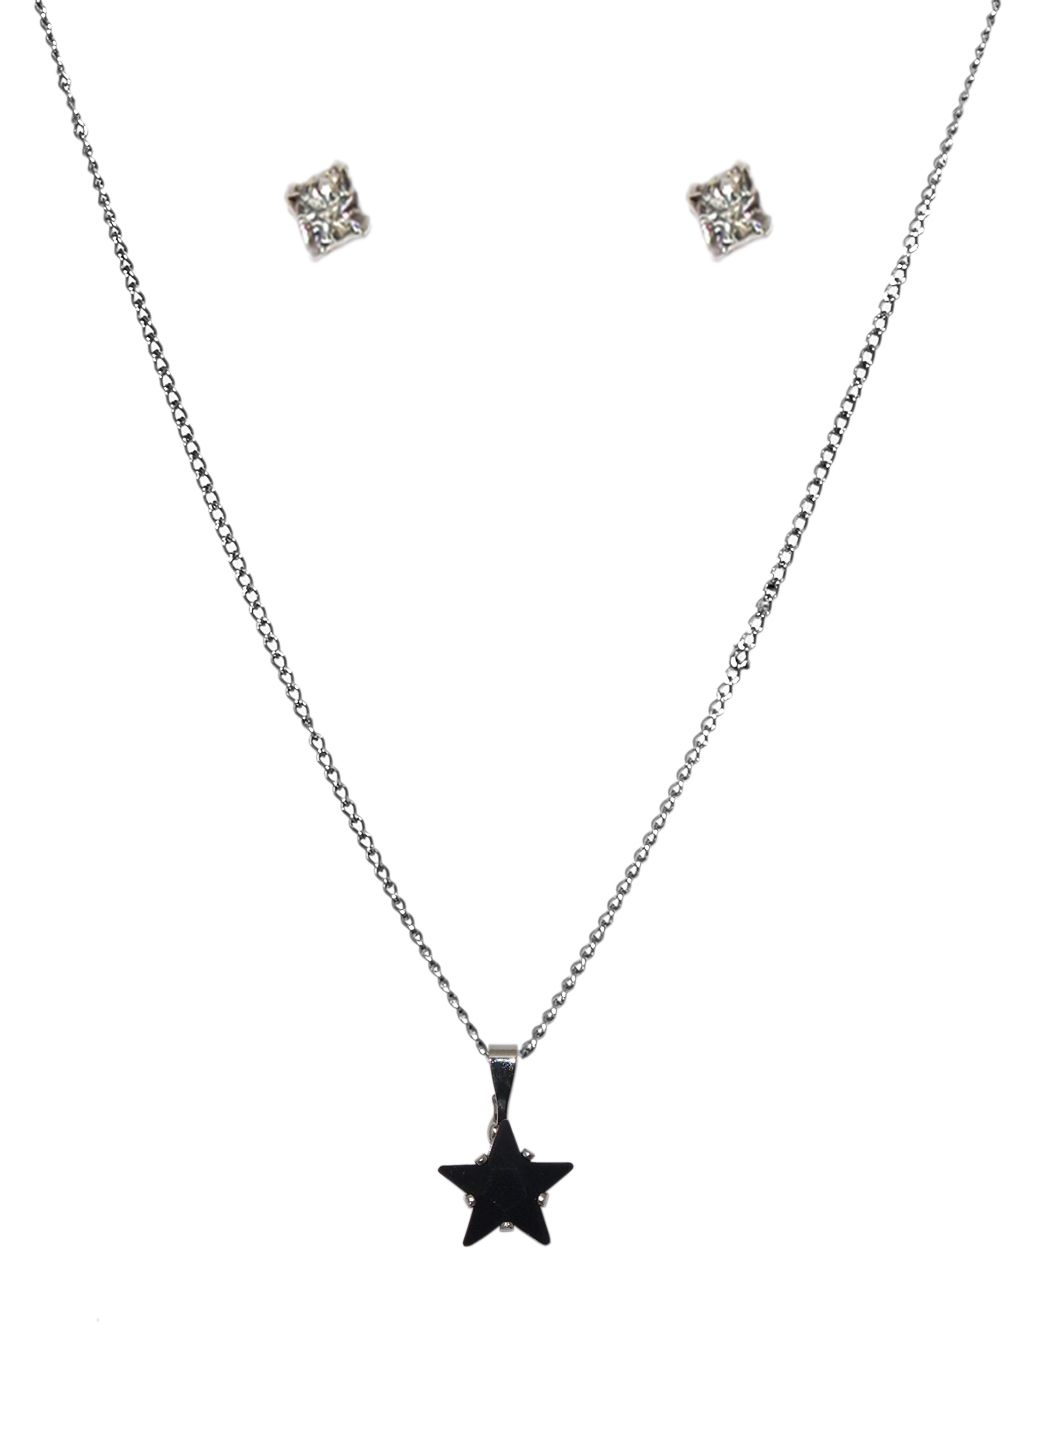 gold star a pendants is what purchasing shaped shape pendant an setting cut diamond htm kite h ct invisible white color